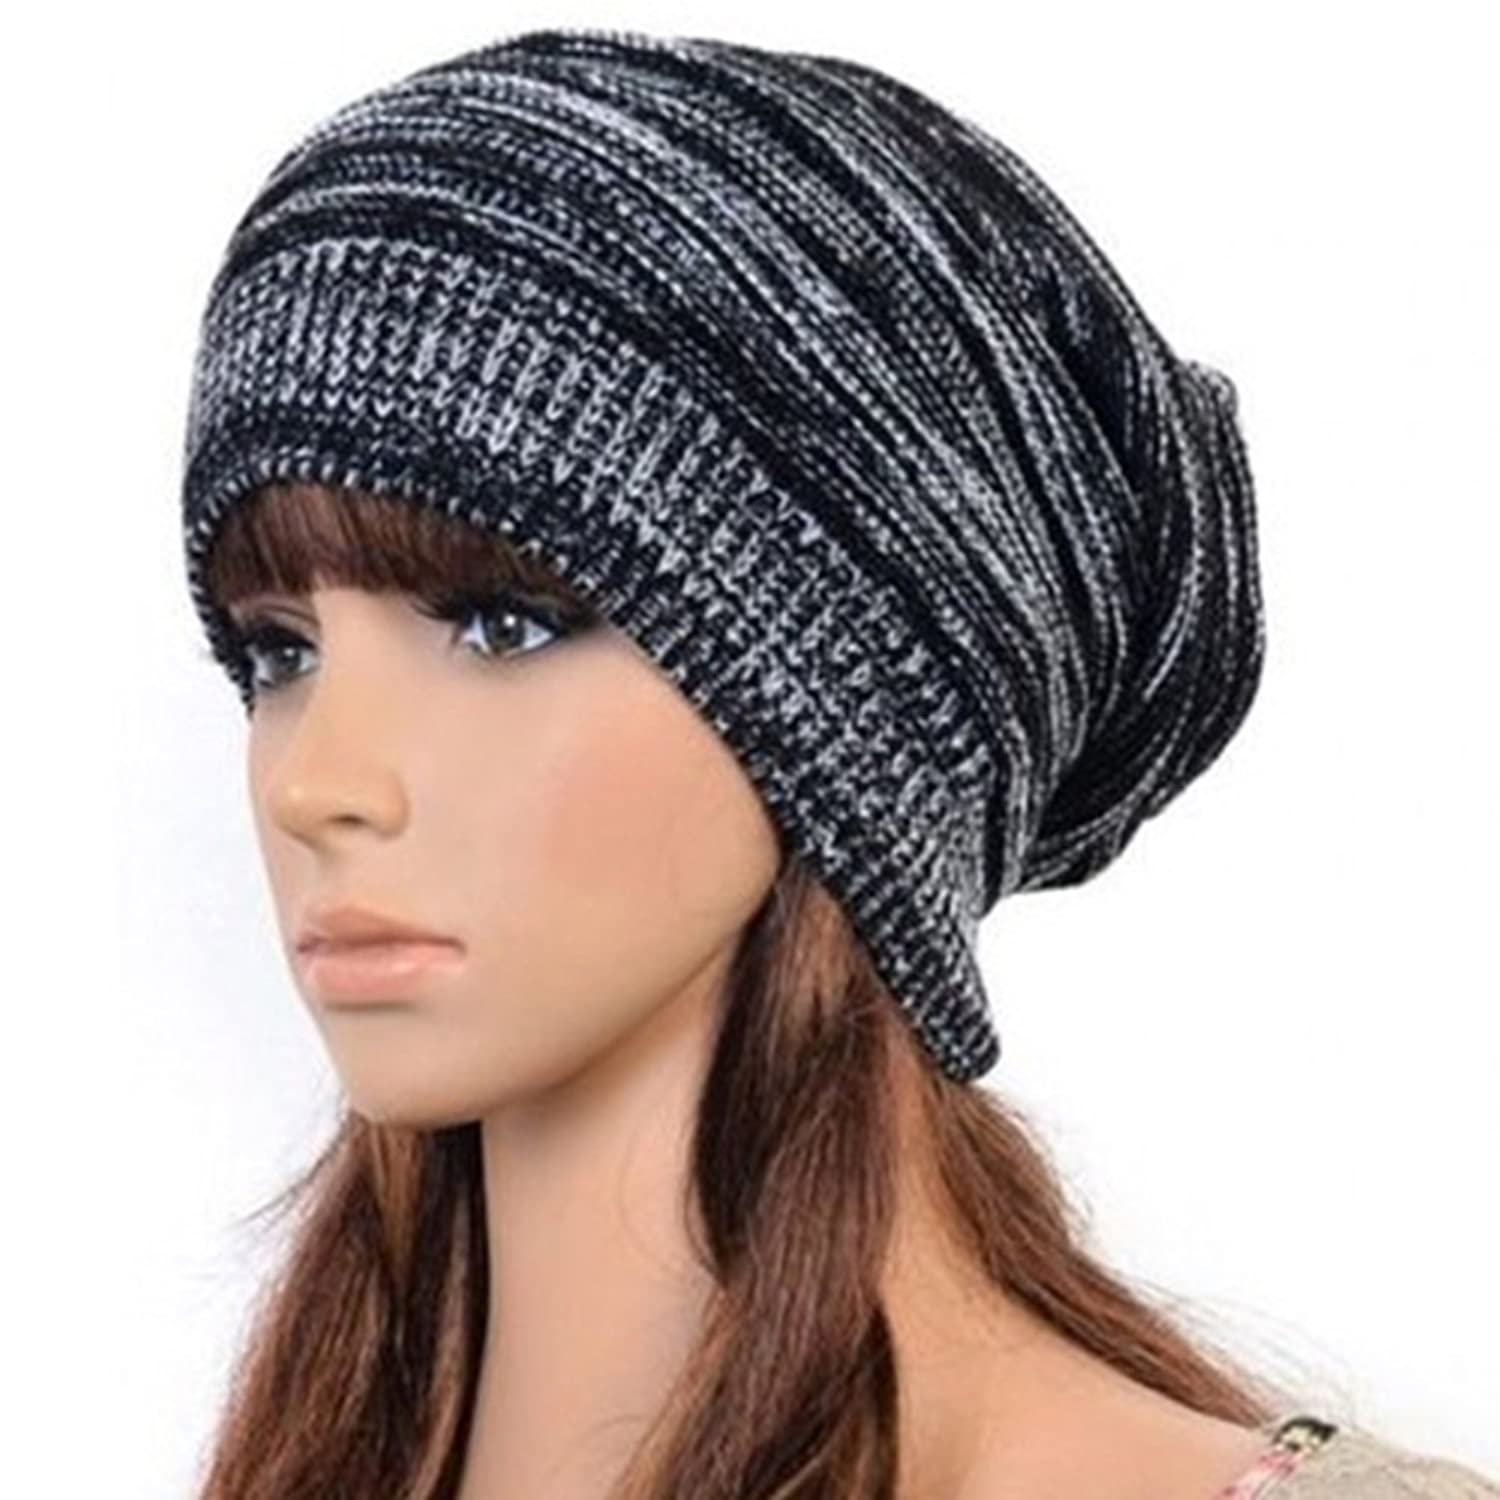 Hot fashion slouch baggy beanie cap slouchy skull hat mens womens hot fashion slouch baggy beanie cap slouchy skull hat mens womens knit hat black at amazon womens clothing store dt1010fo